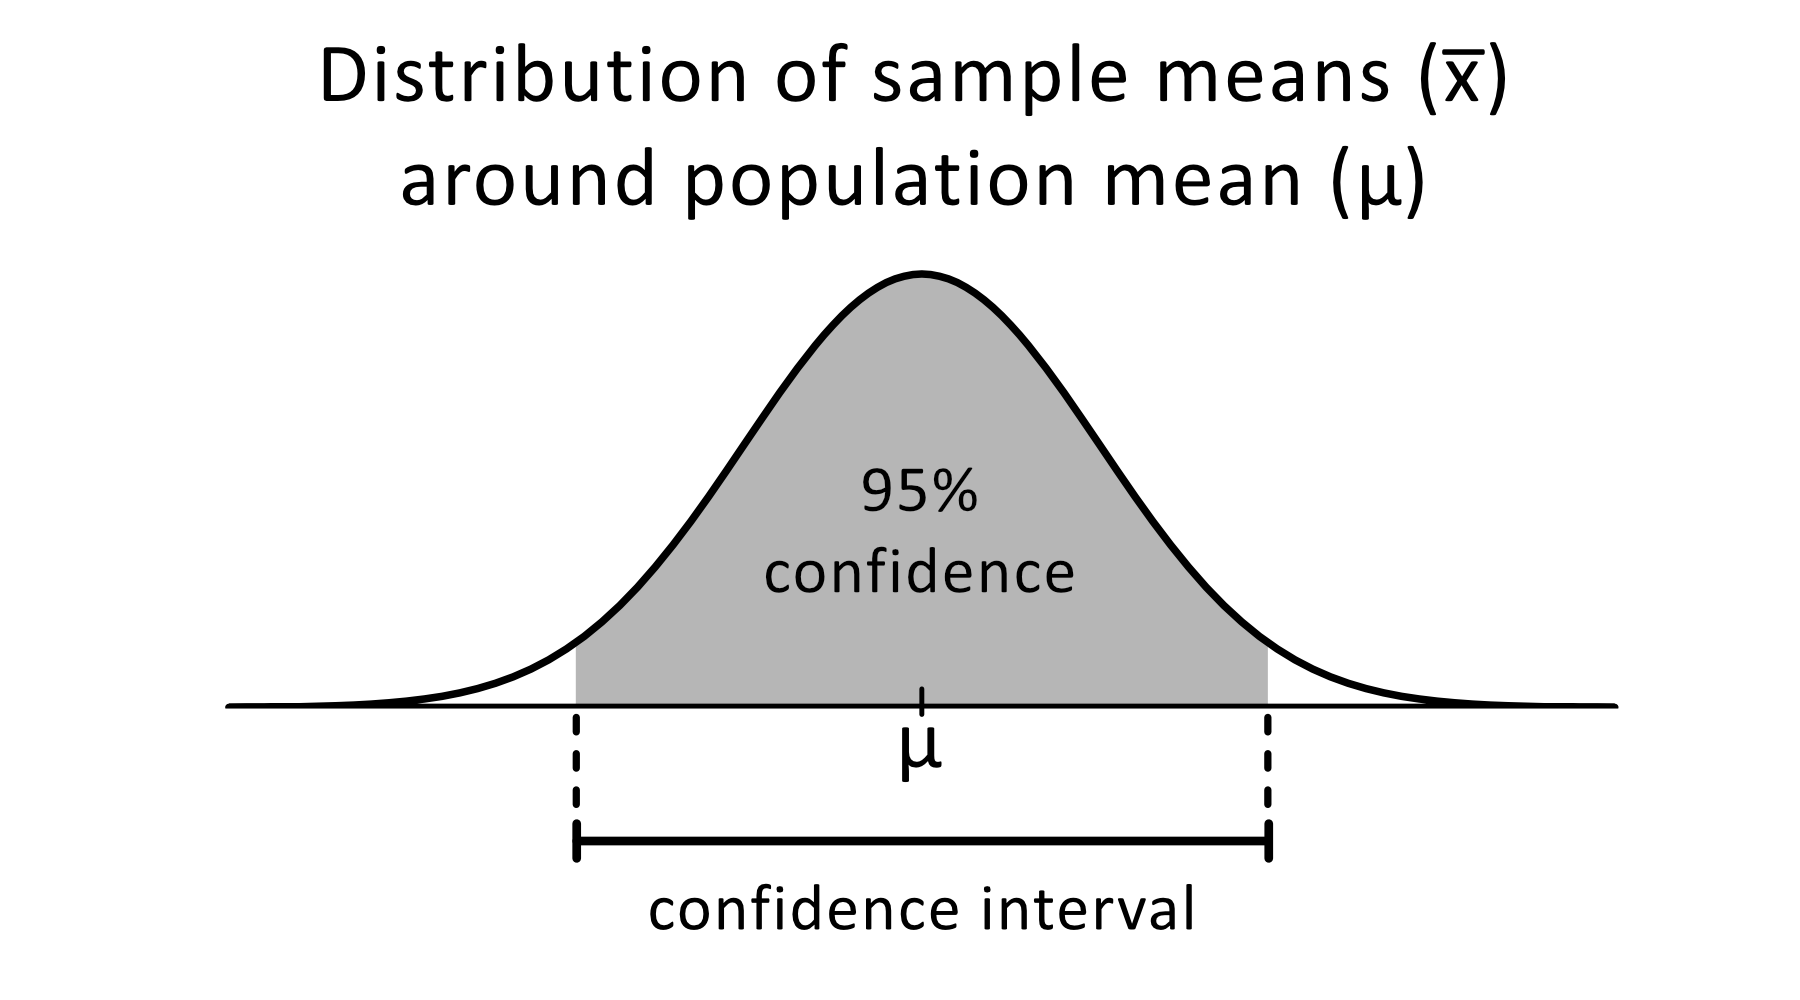 confidence interval figure